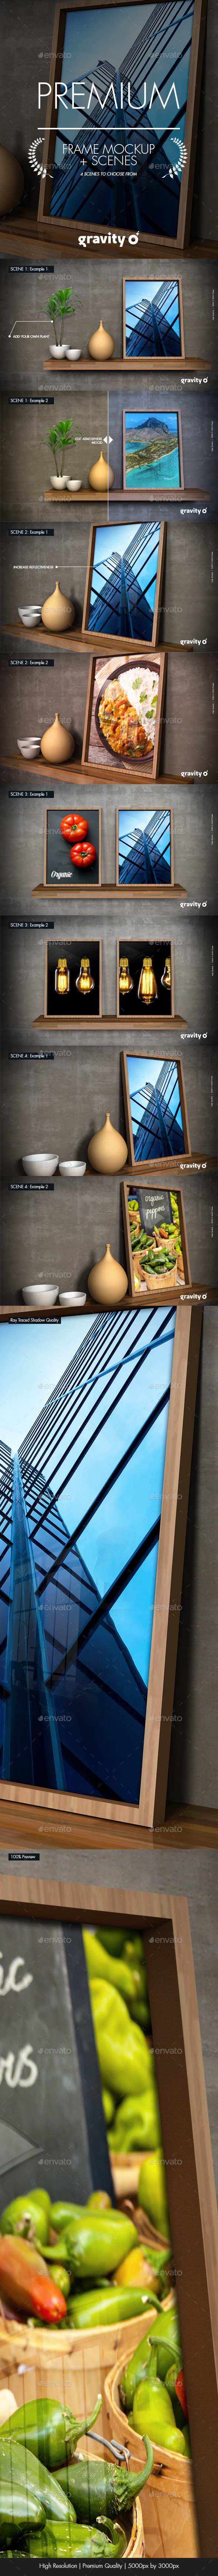 Picture Frame Mockup & Scenes - Product Mock-Ups Graphics